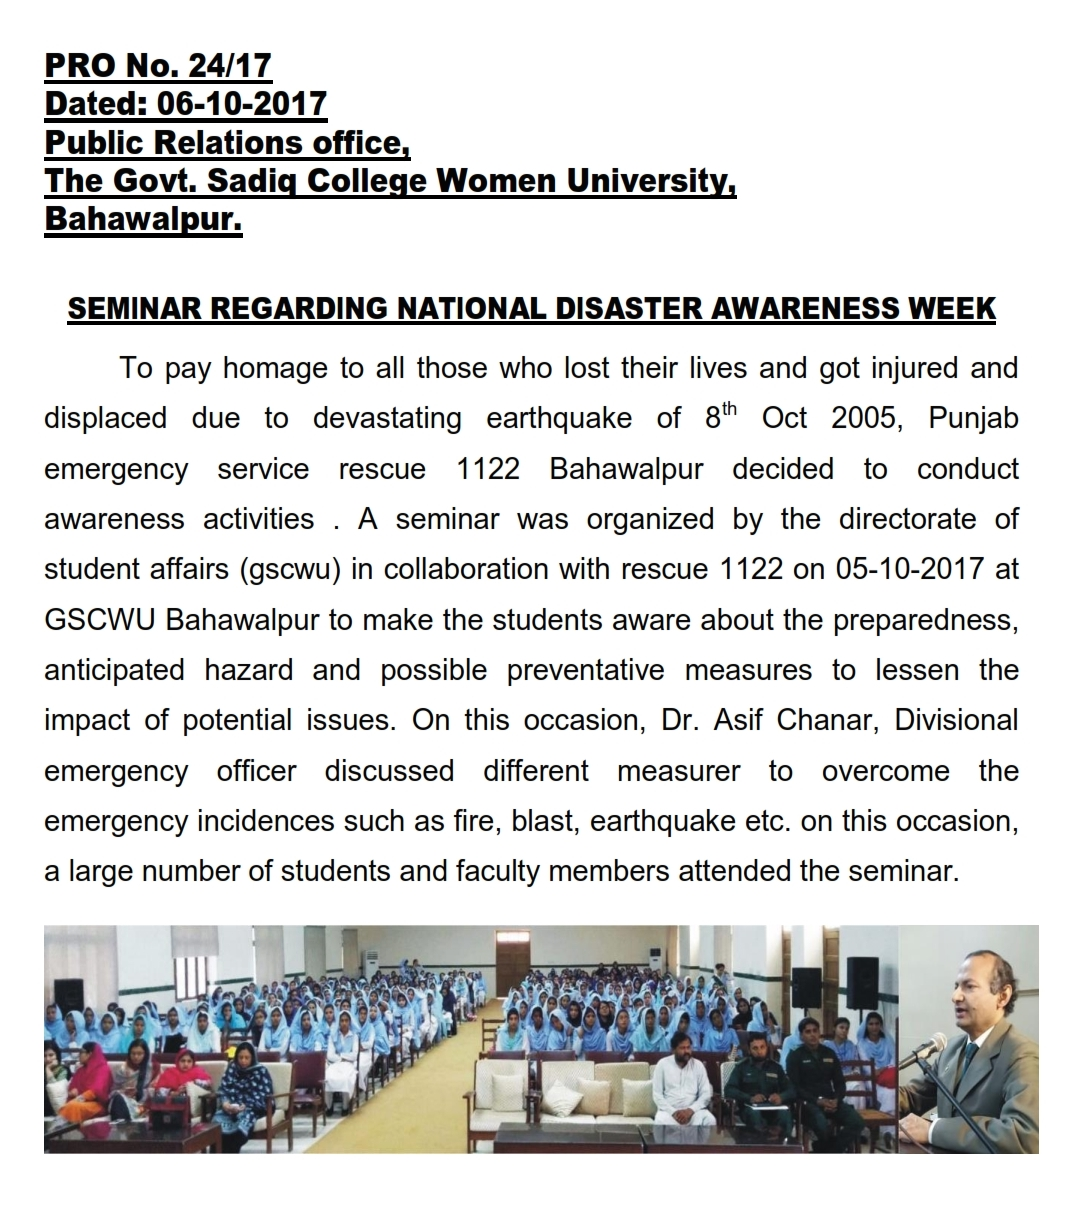 Seminar Regarding National Disaster Awareness Week